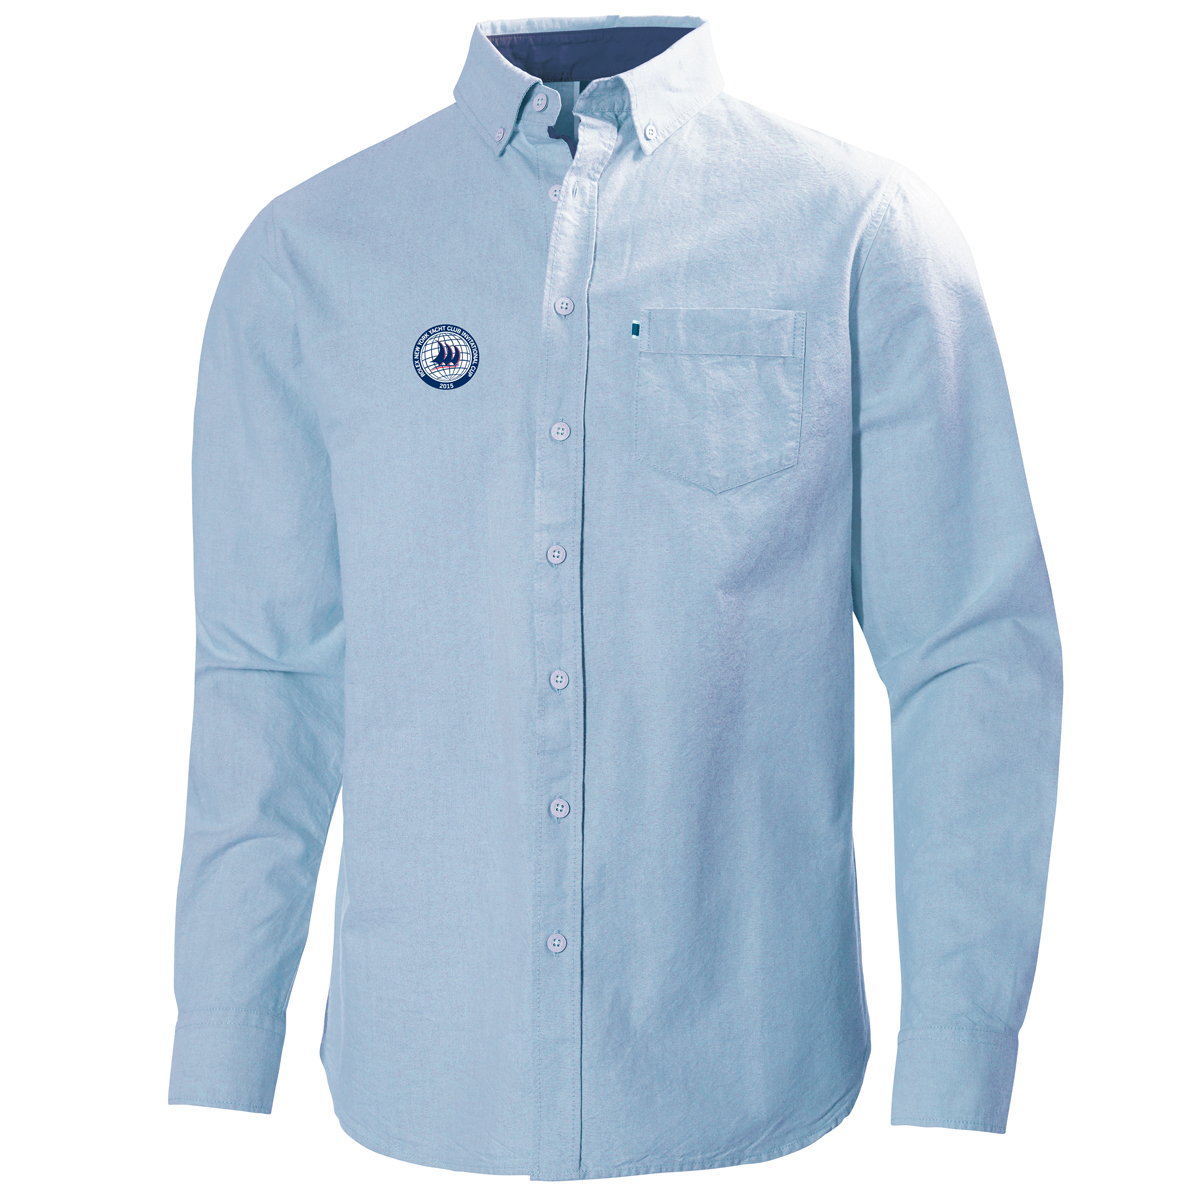 NYYCIC- M'S OXFORD SHIRT